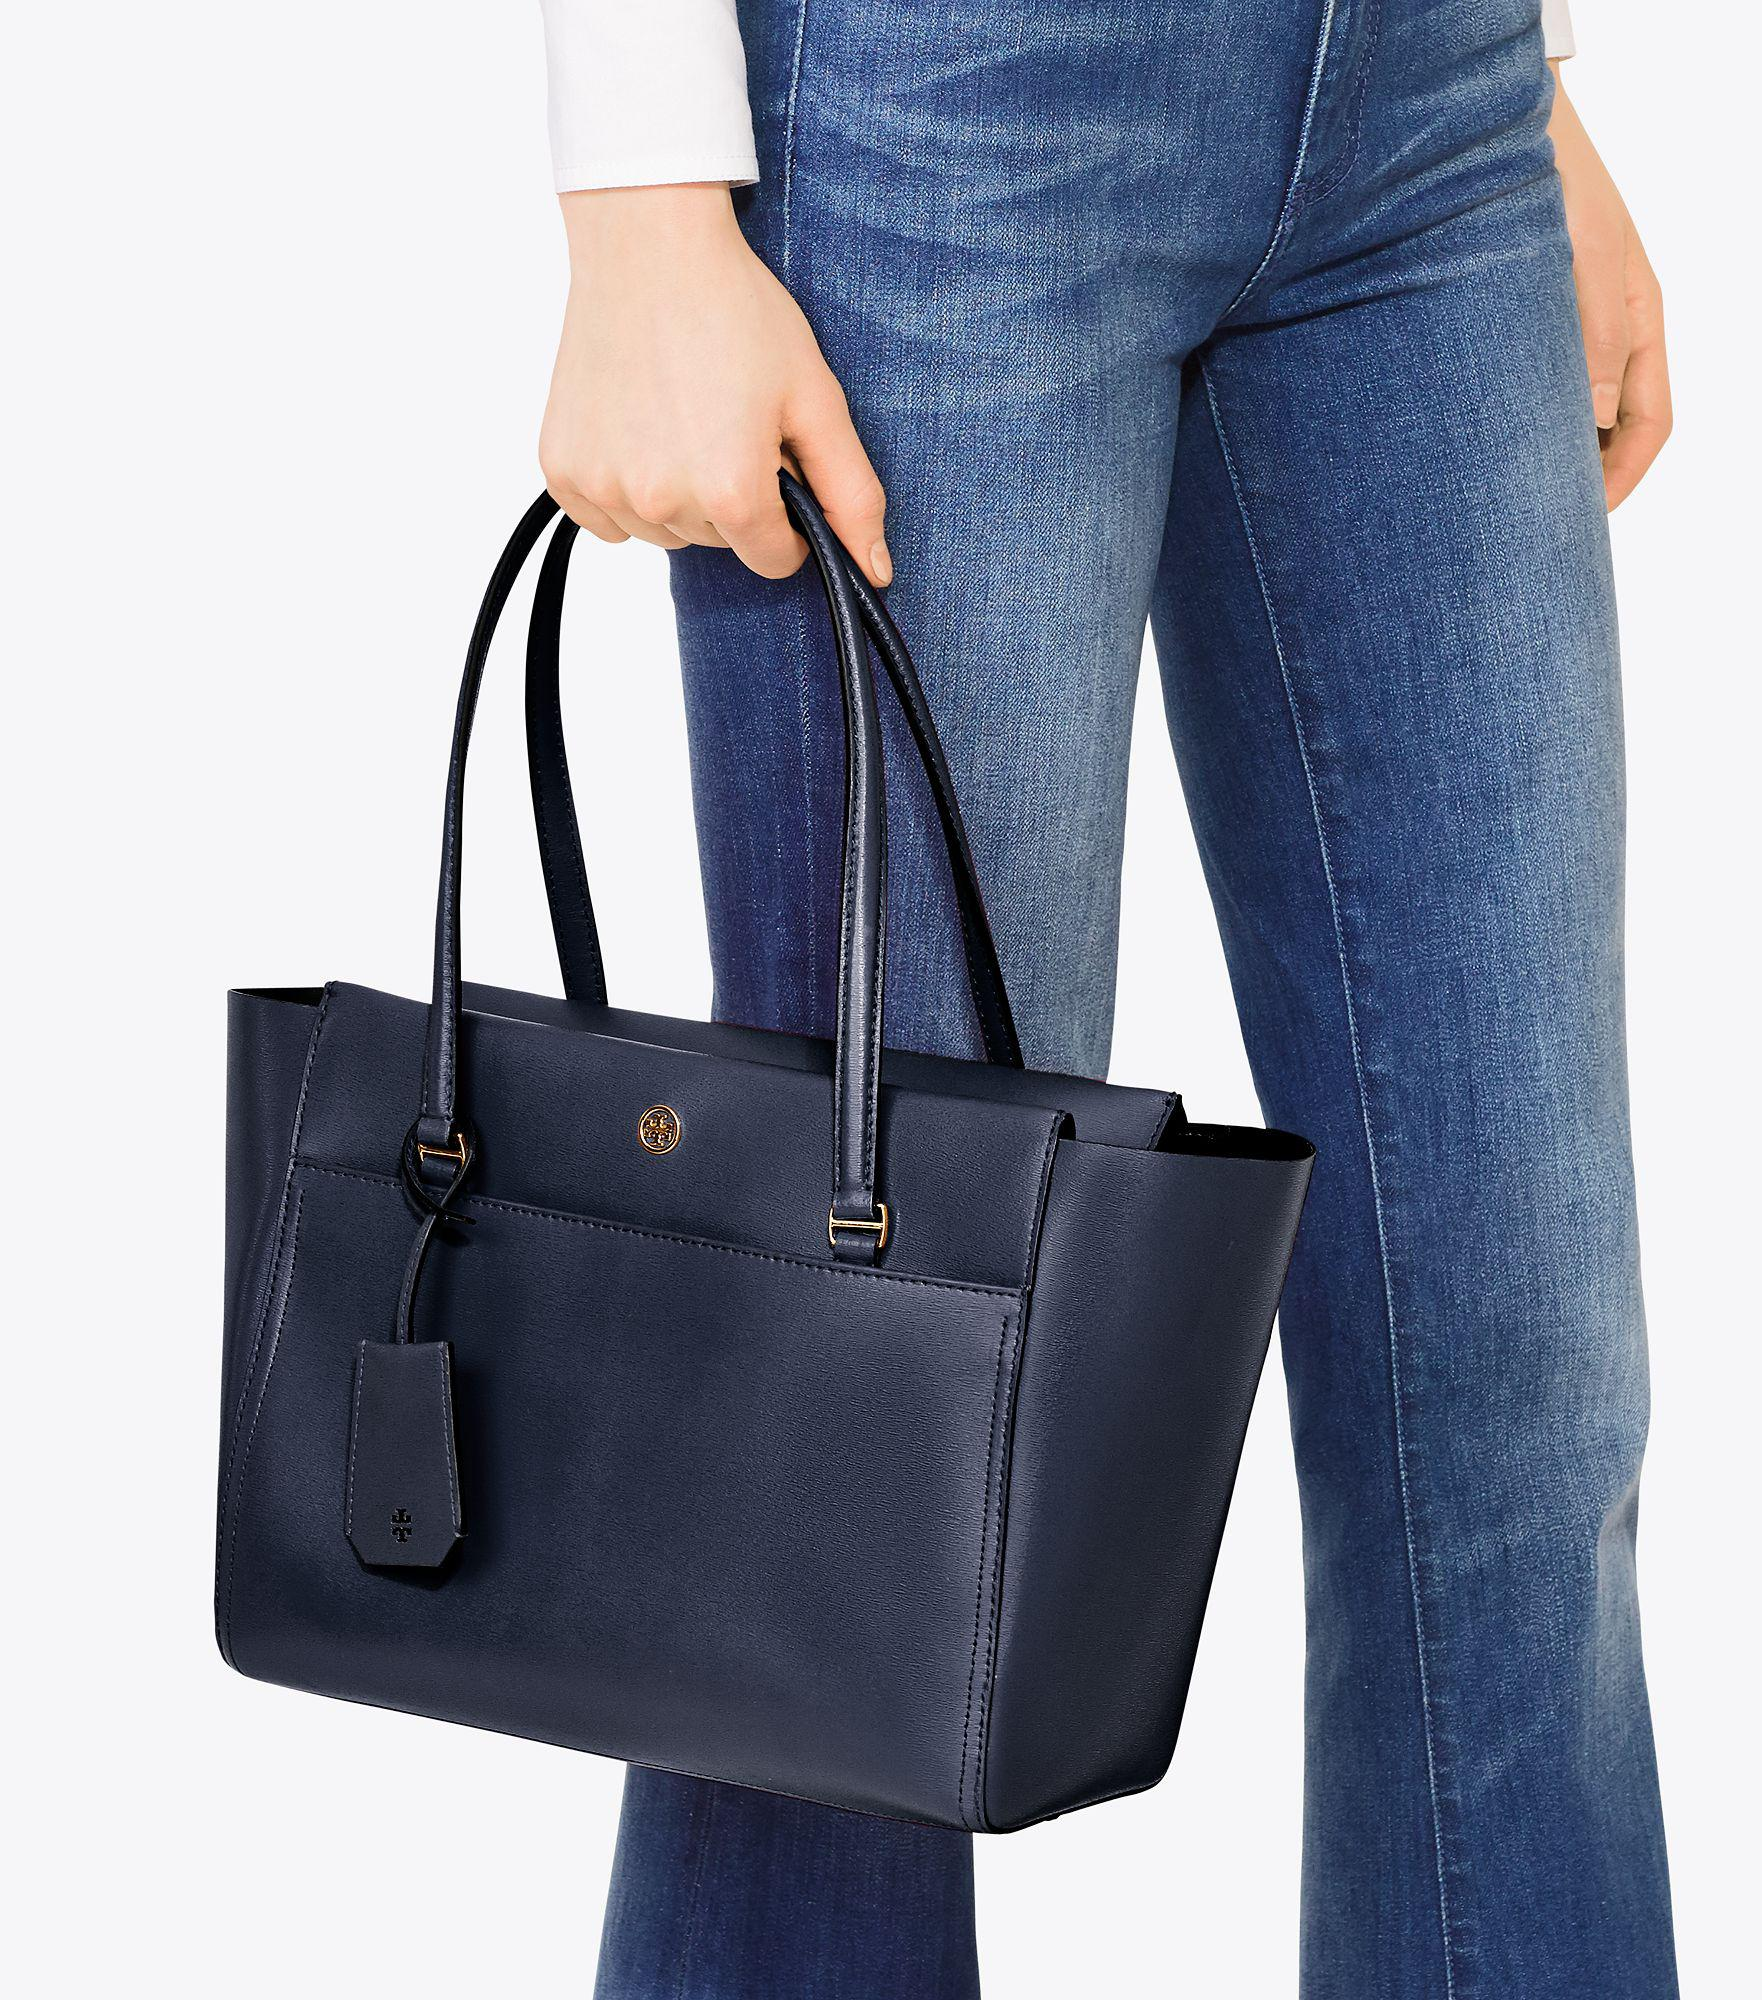 9d2e4d3b8bb3 Lyst - Tory Burch Parker Small Tote in Blue